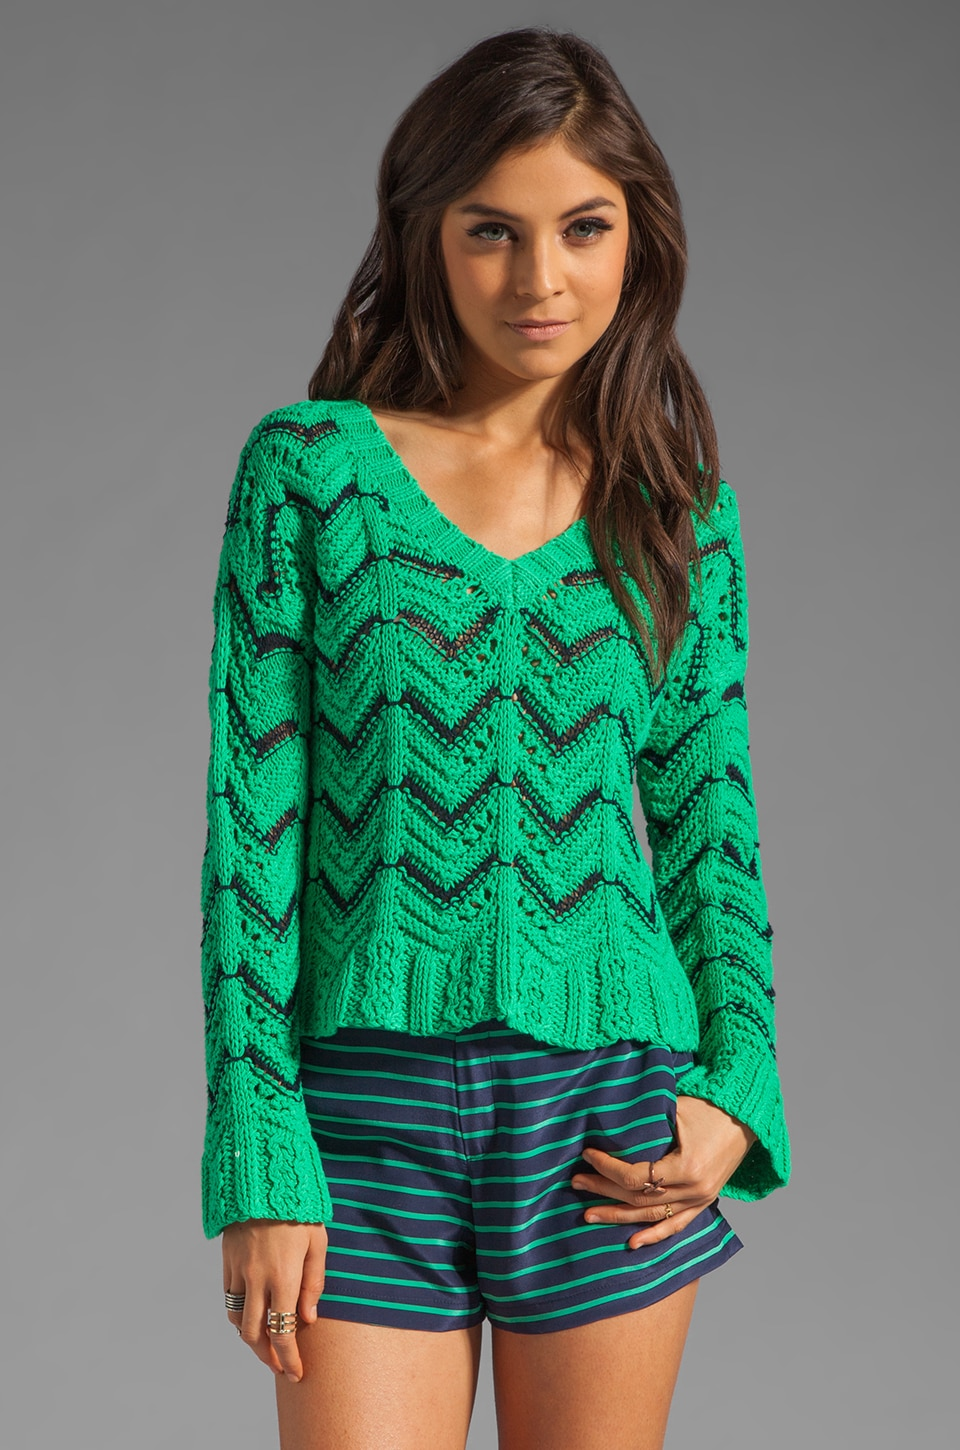 Nanette Lepore Exhibitioner Knit Sweater in Gumball Green/Navy